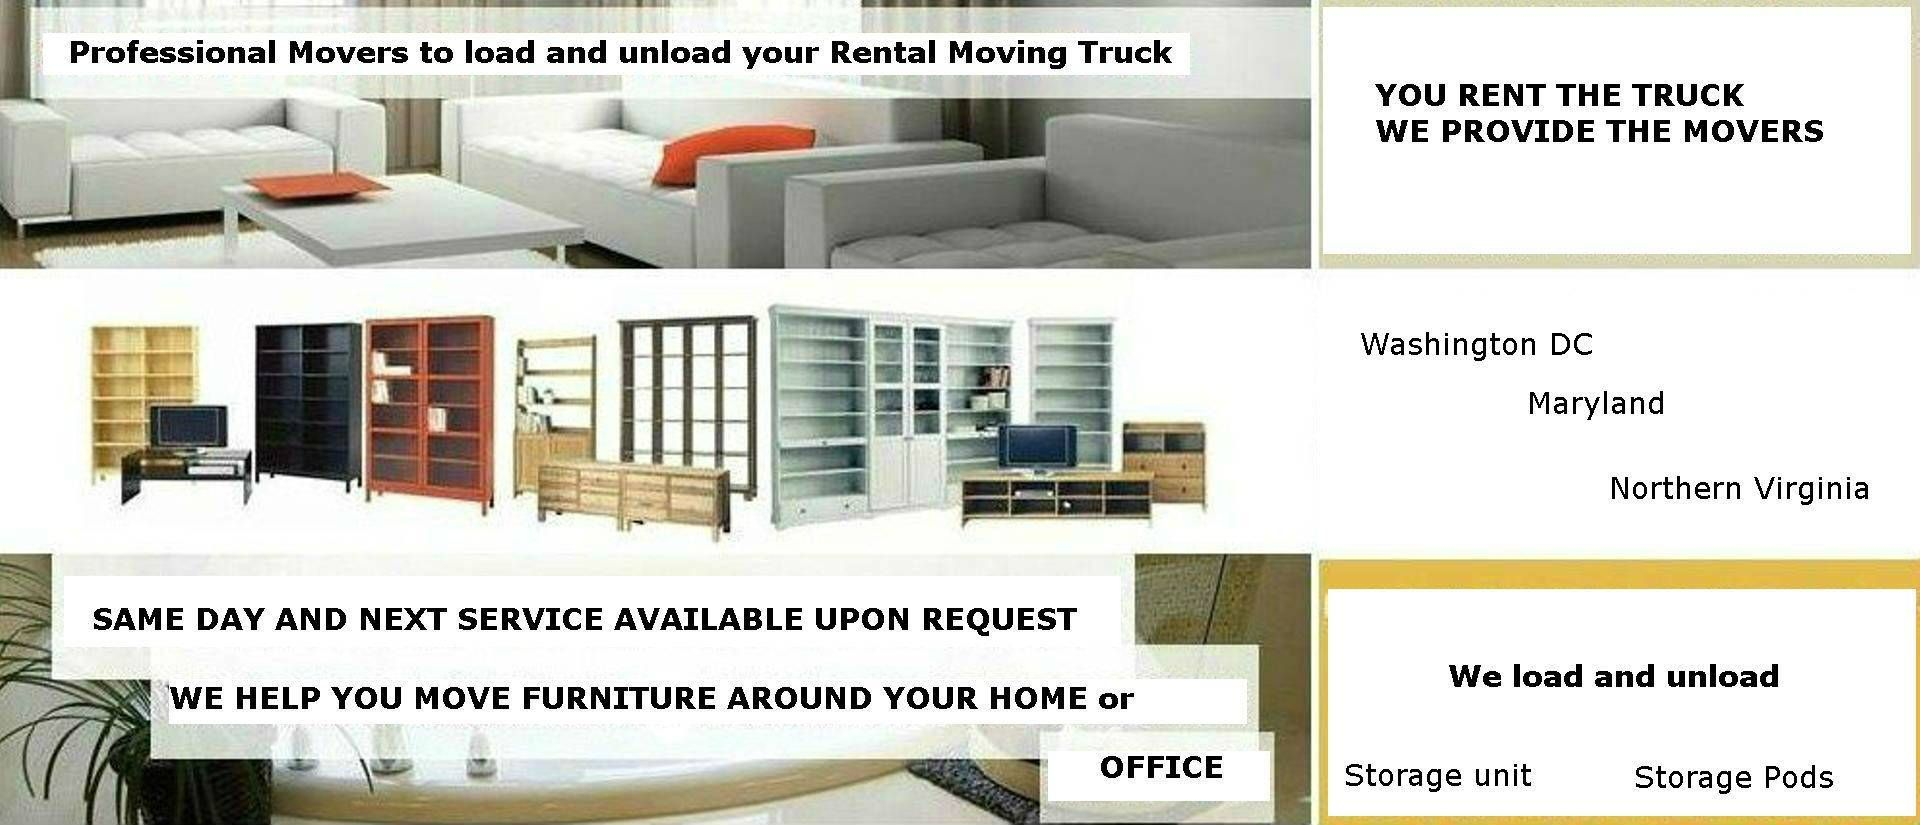 Captivating Furniture Moving Helpers To Help You Move Your Furniture At Your Home Of  Office